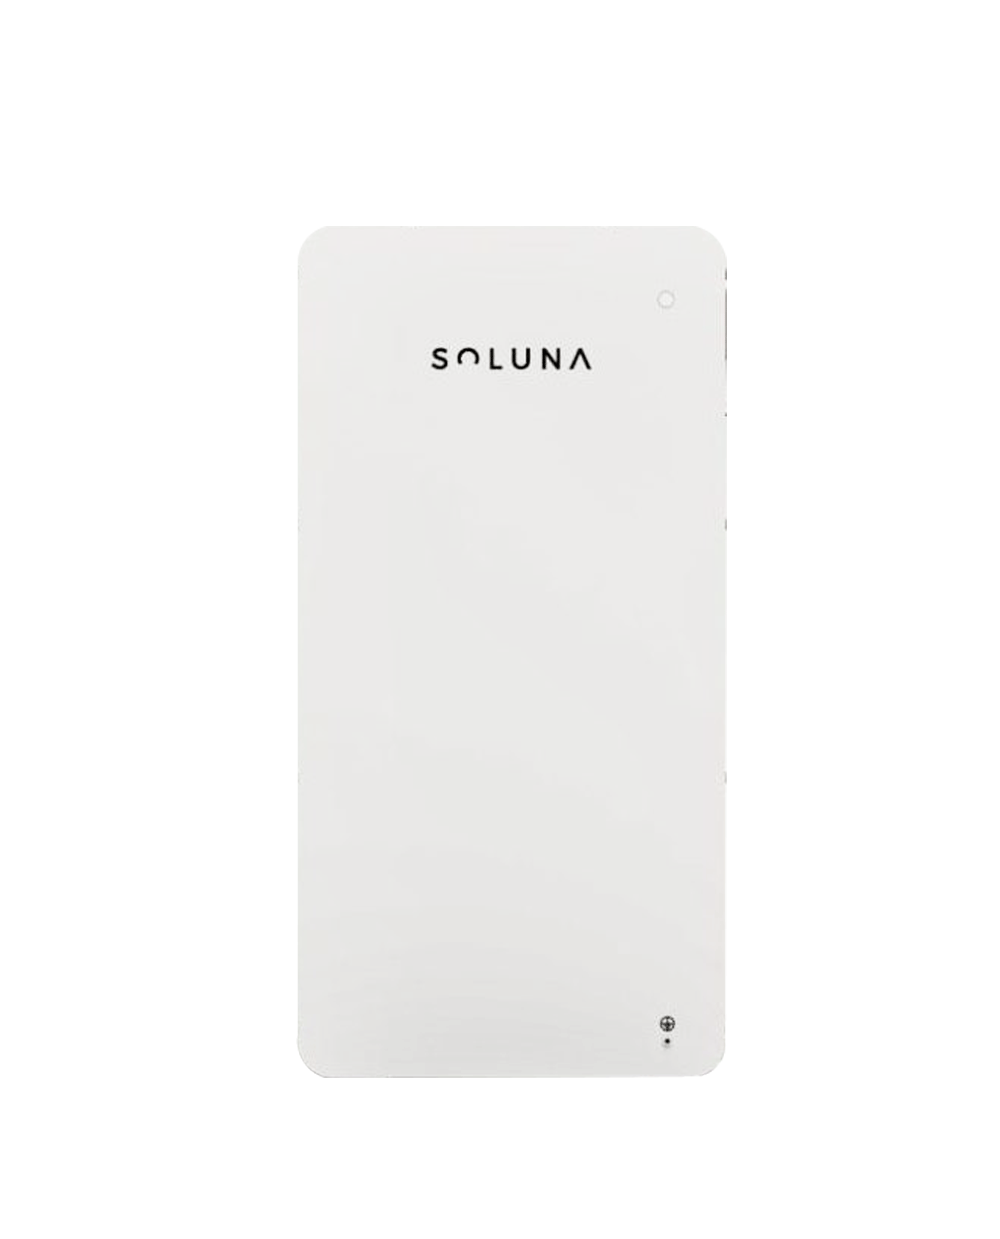 Soluna HV solar battery by PSW Energy